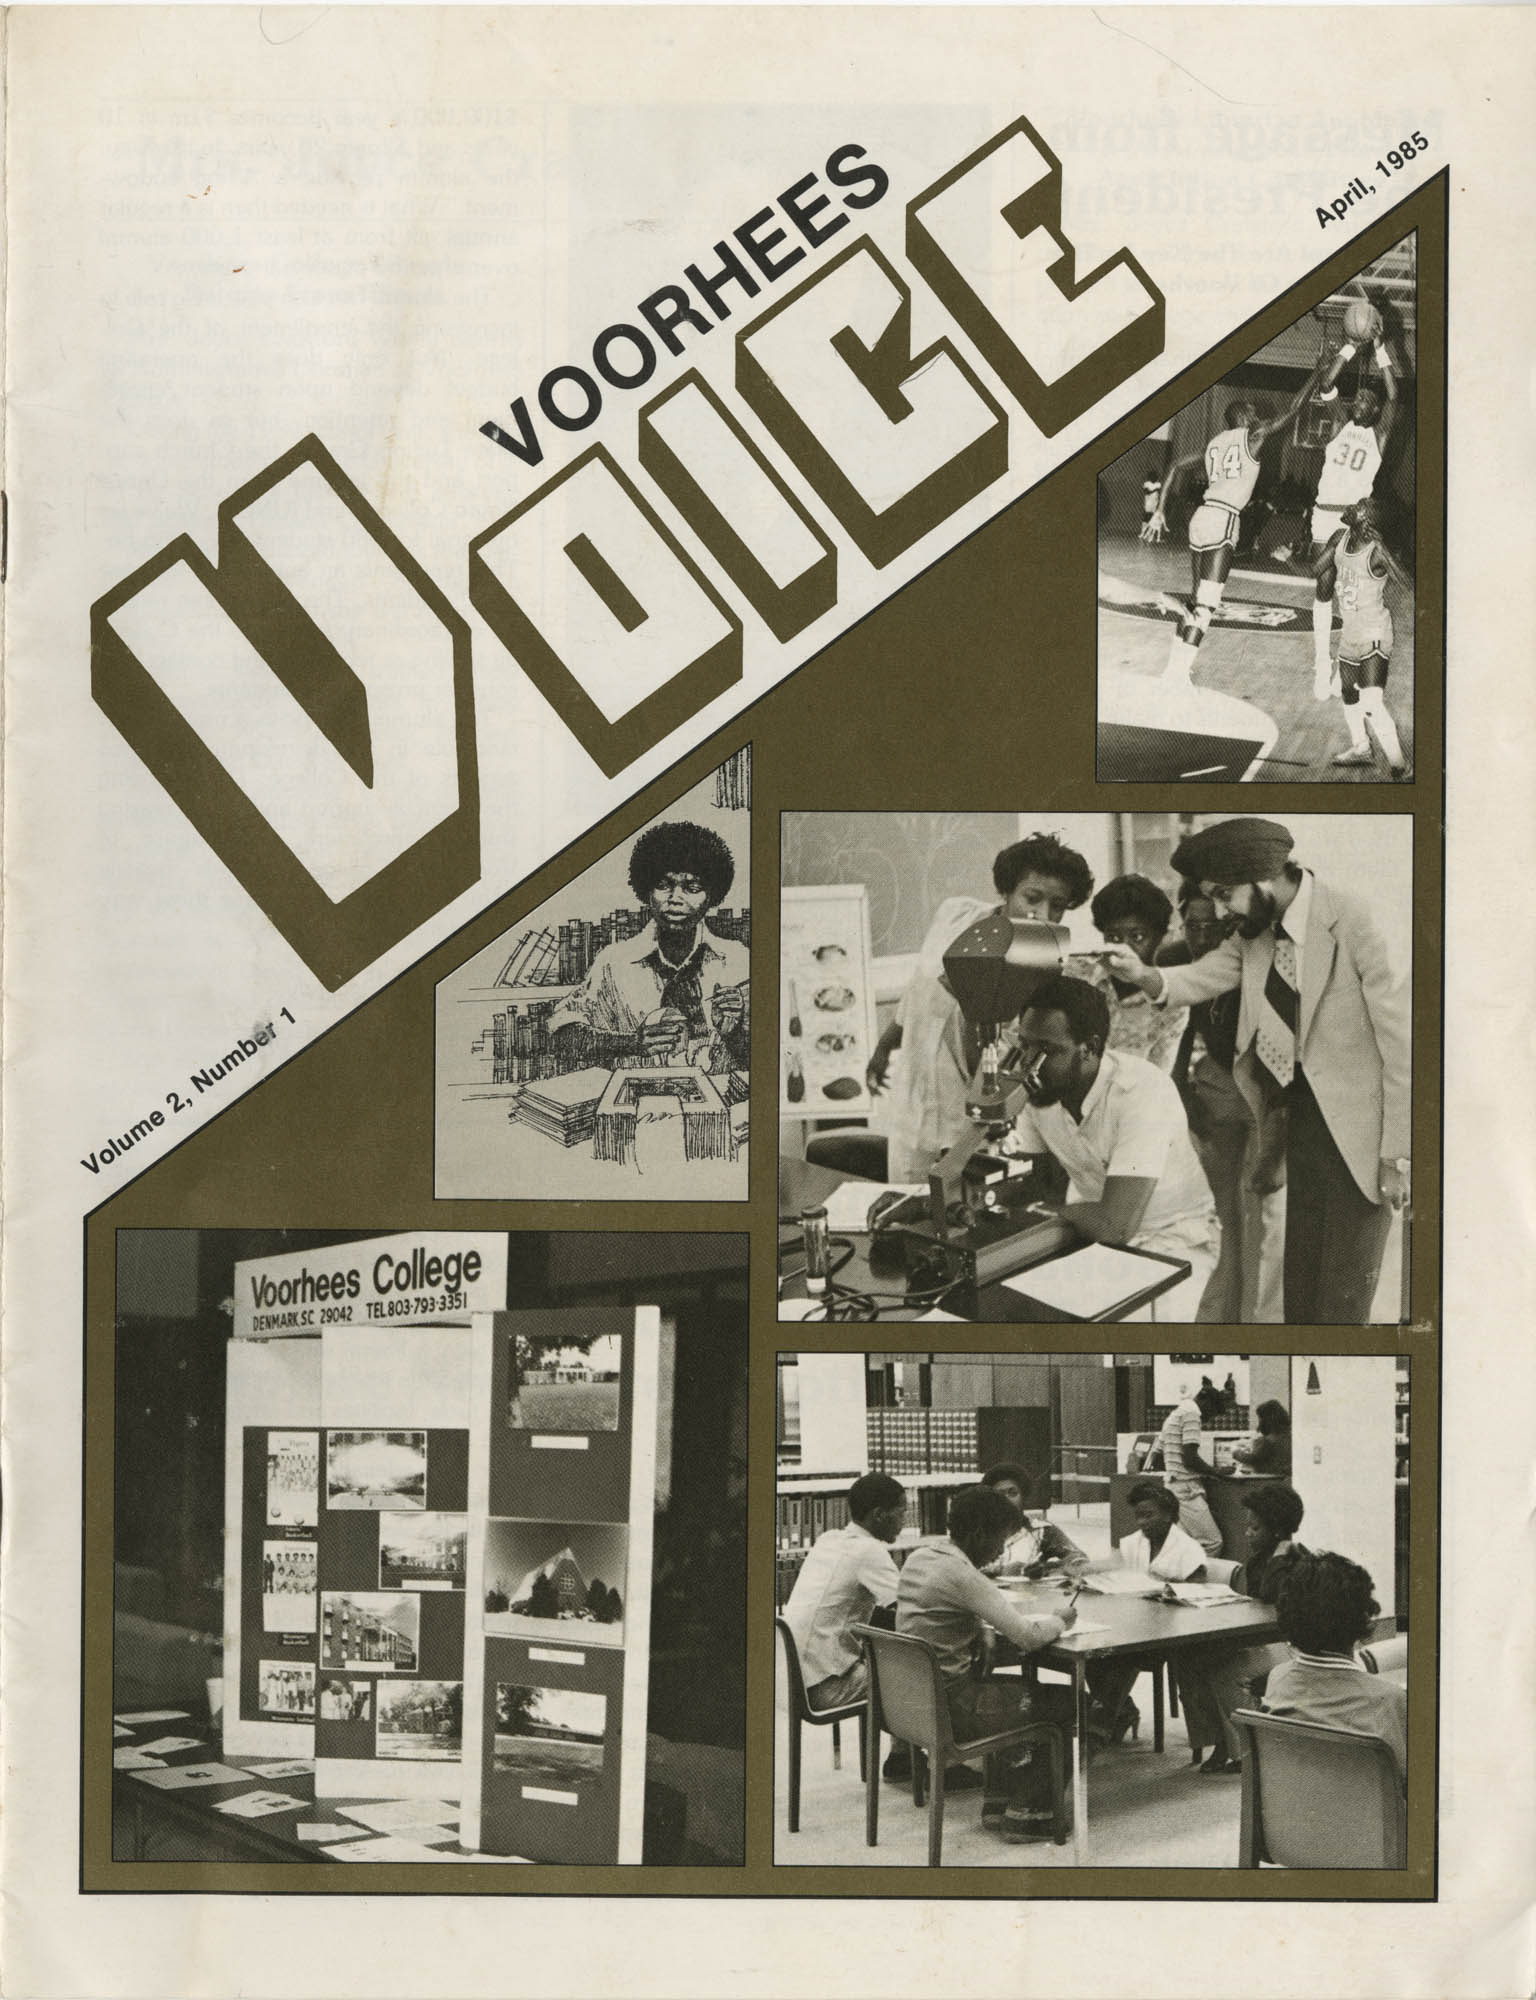 Voorhees Voice, Volume 2, Number 1, April 1985, Front Cover Exterior